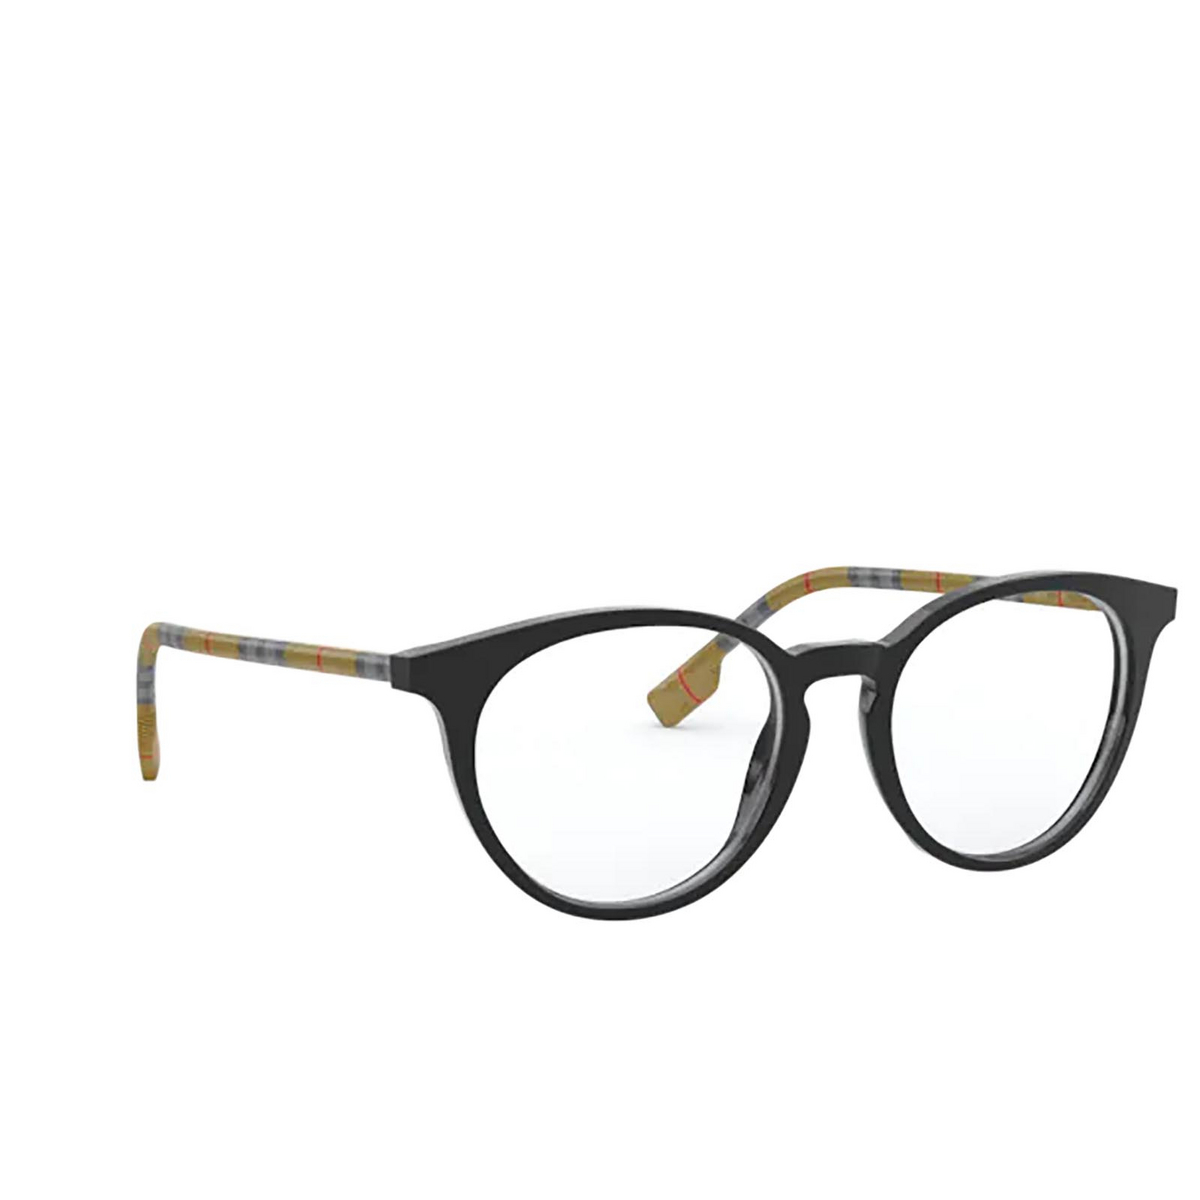 Burberry® Round Eyeglasses: Chalcot BE2318 color Black 3853 - three-quarters view.